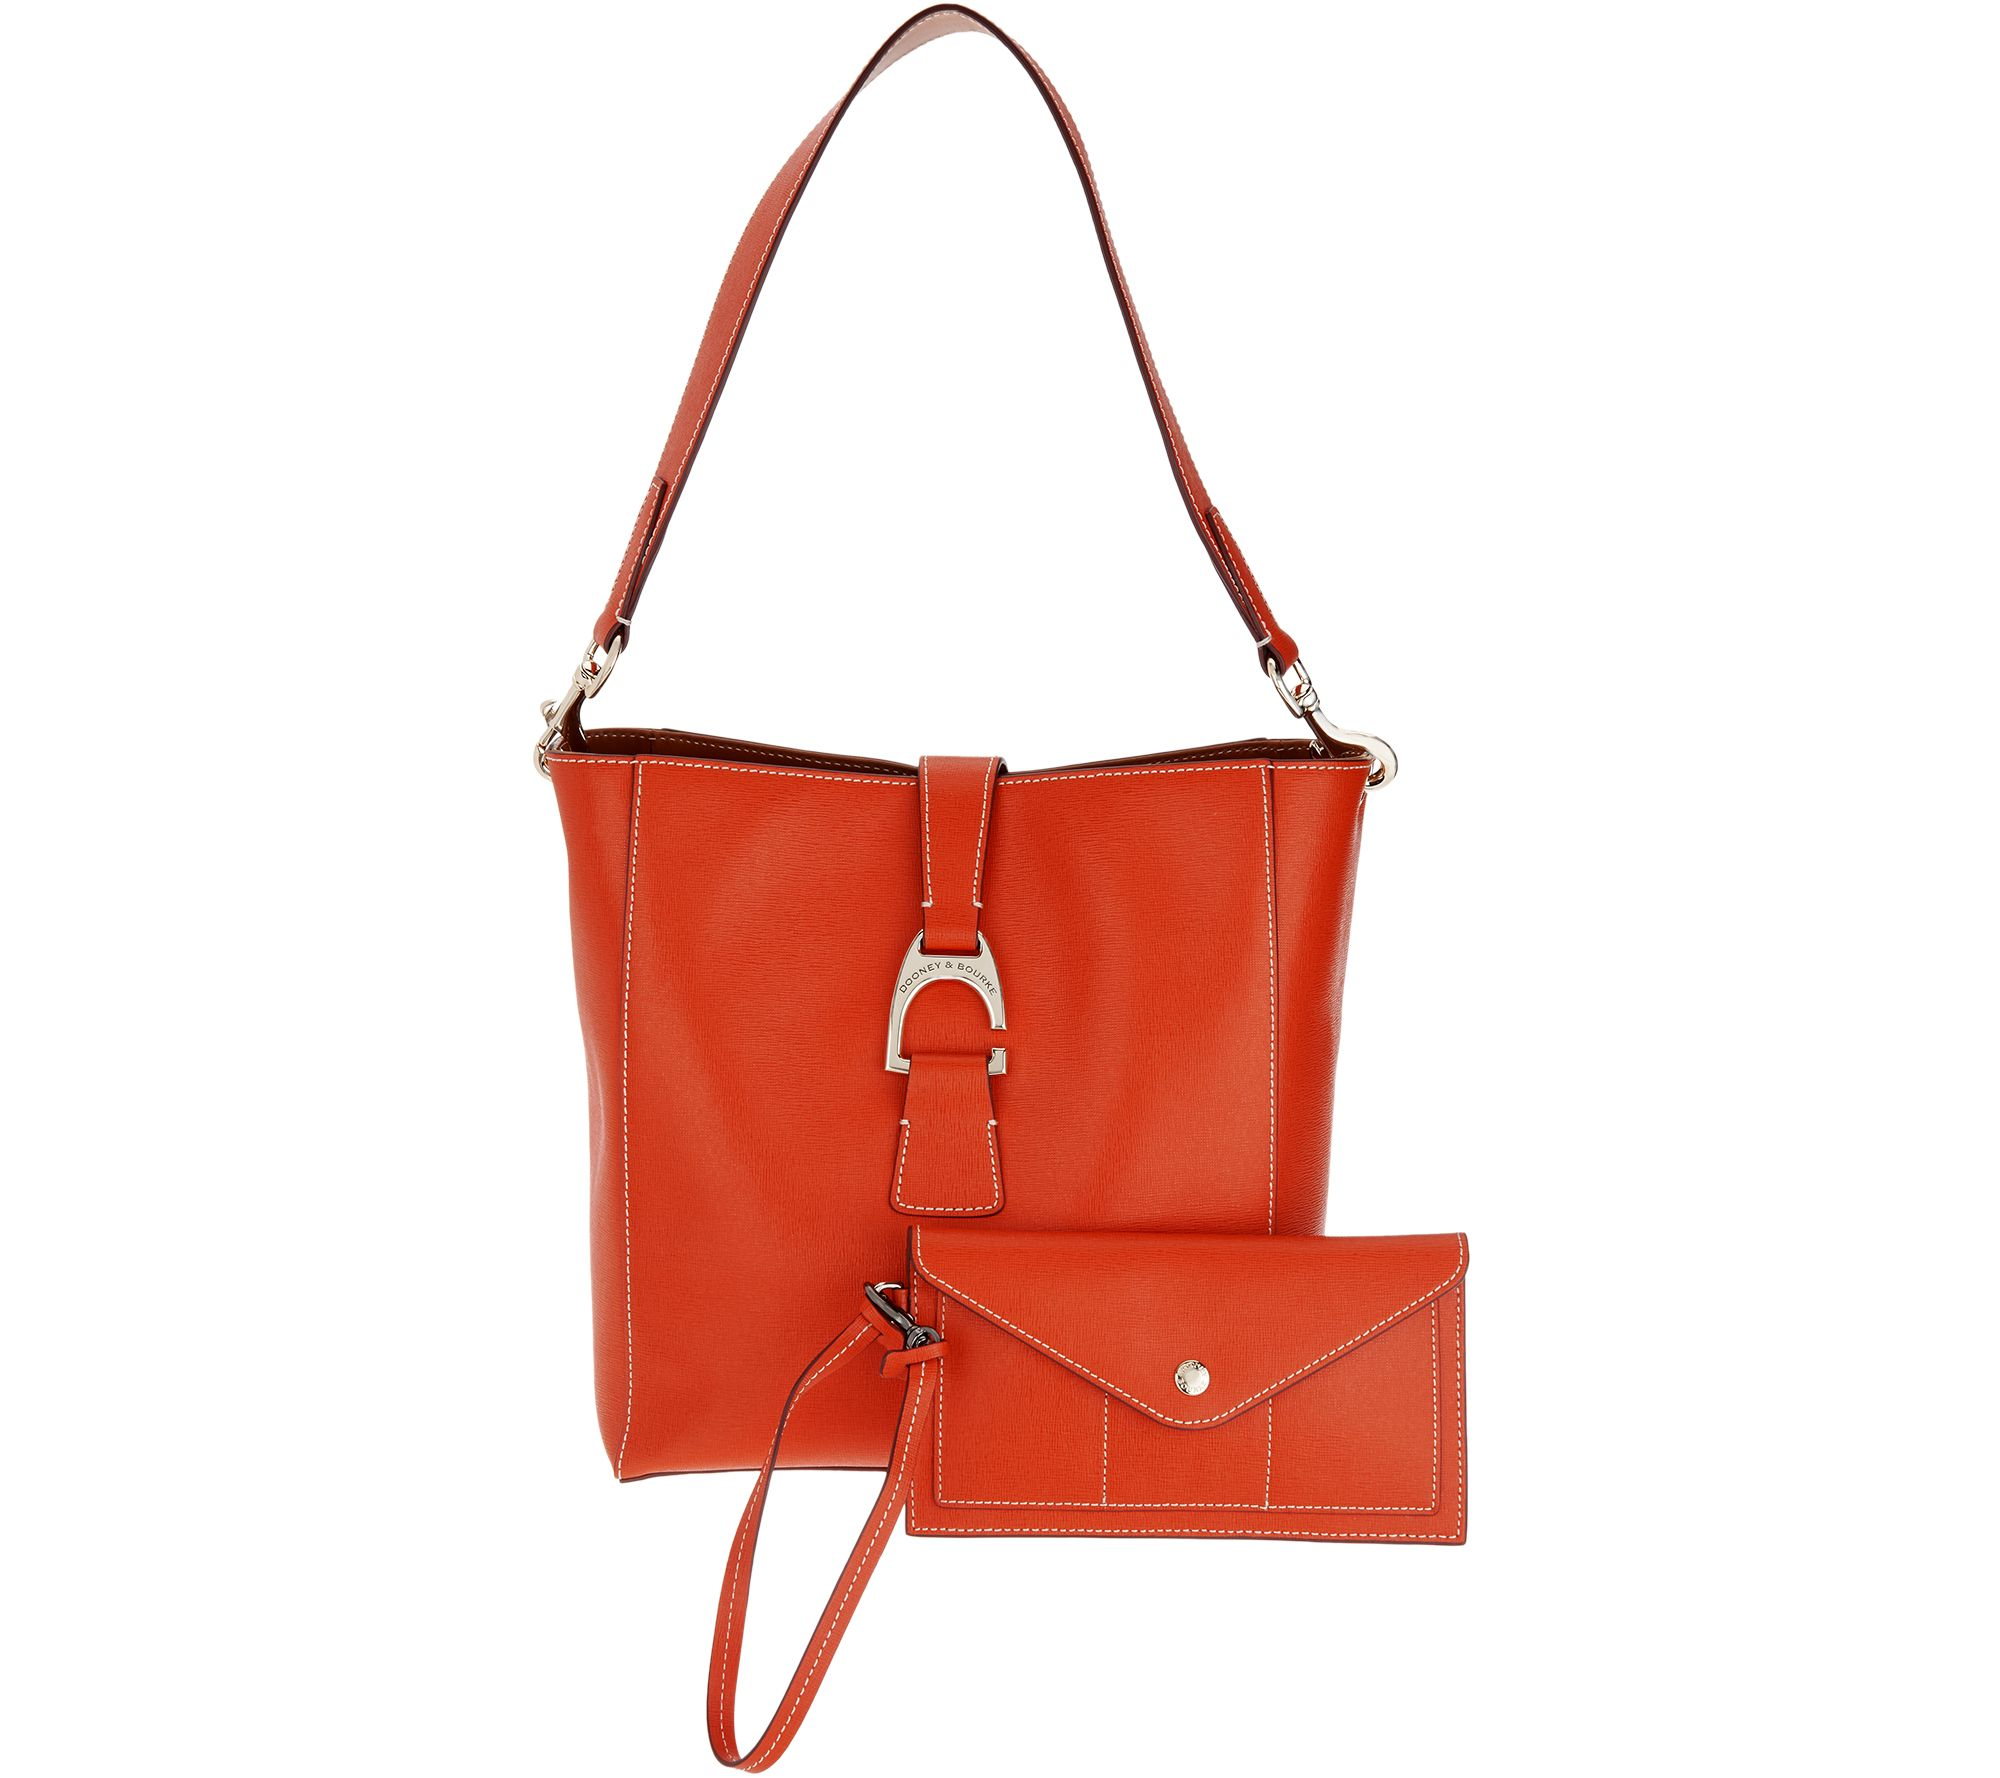 As Is Dooney Bourke Saffiano Leather Shoulder Bag Qvc